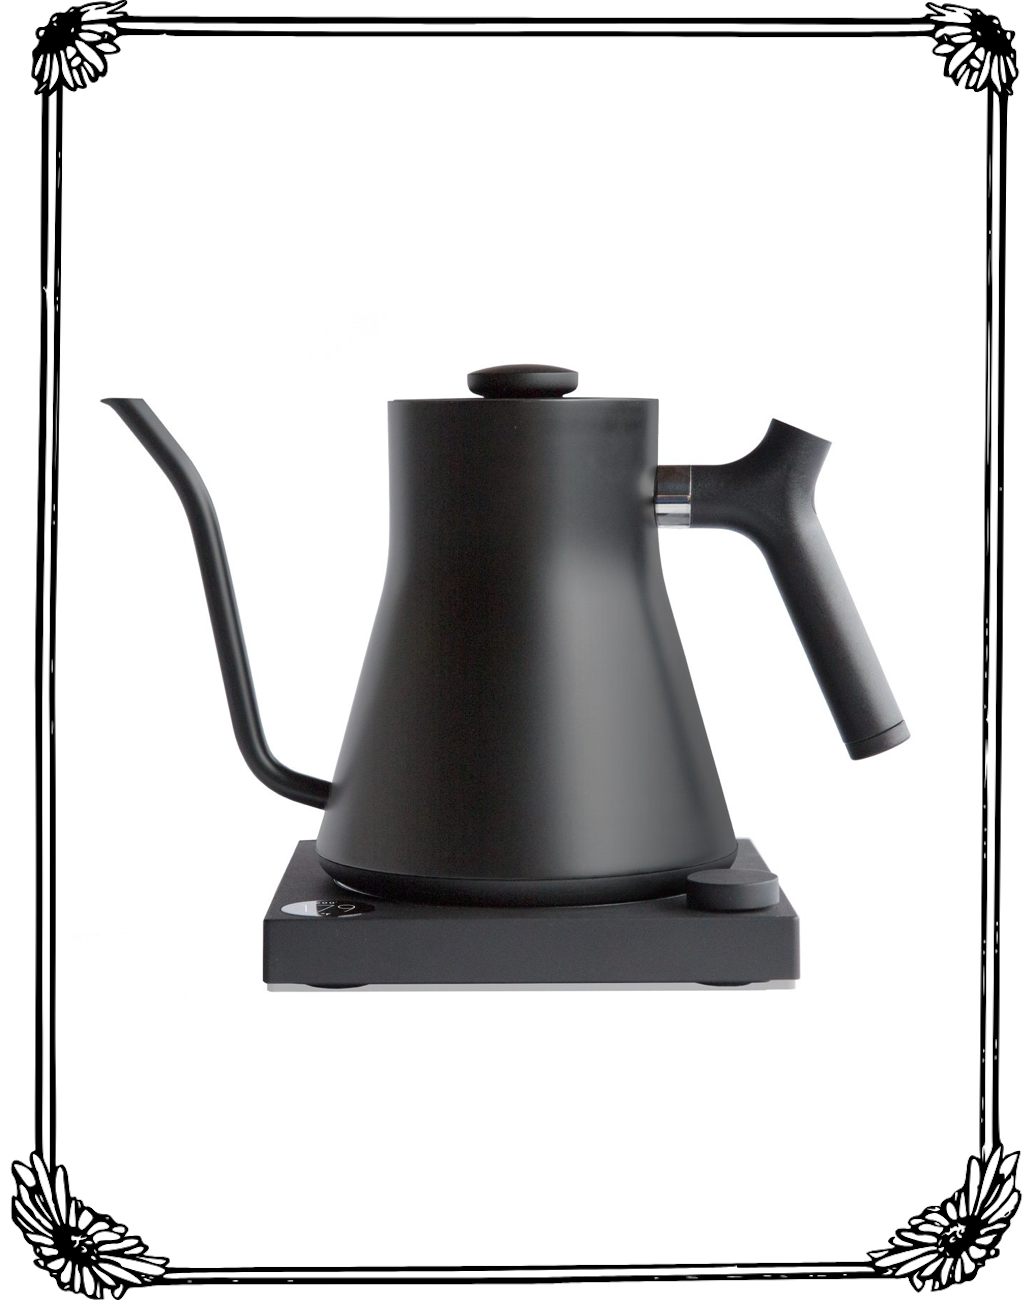 stagg-ekg-kettle.png